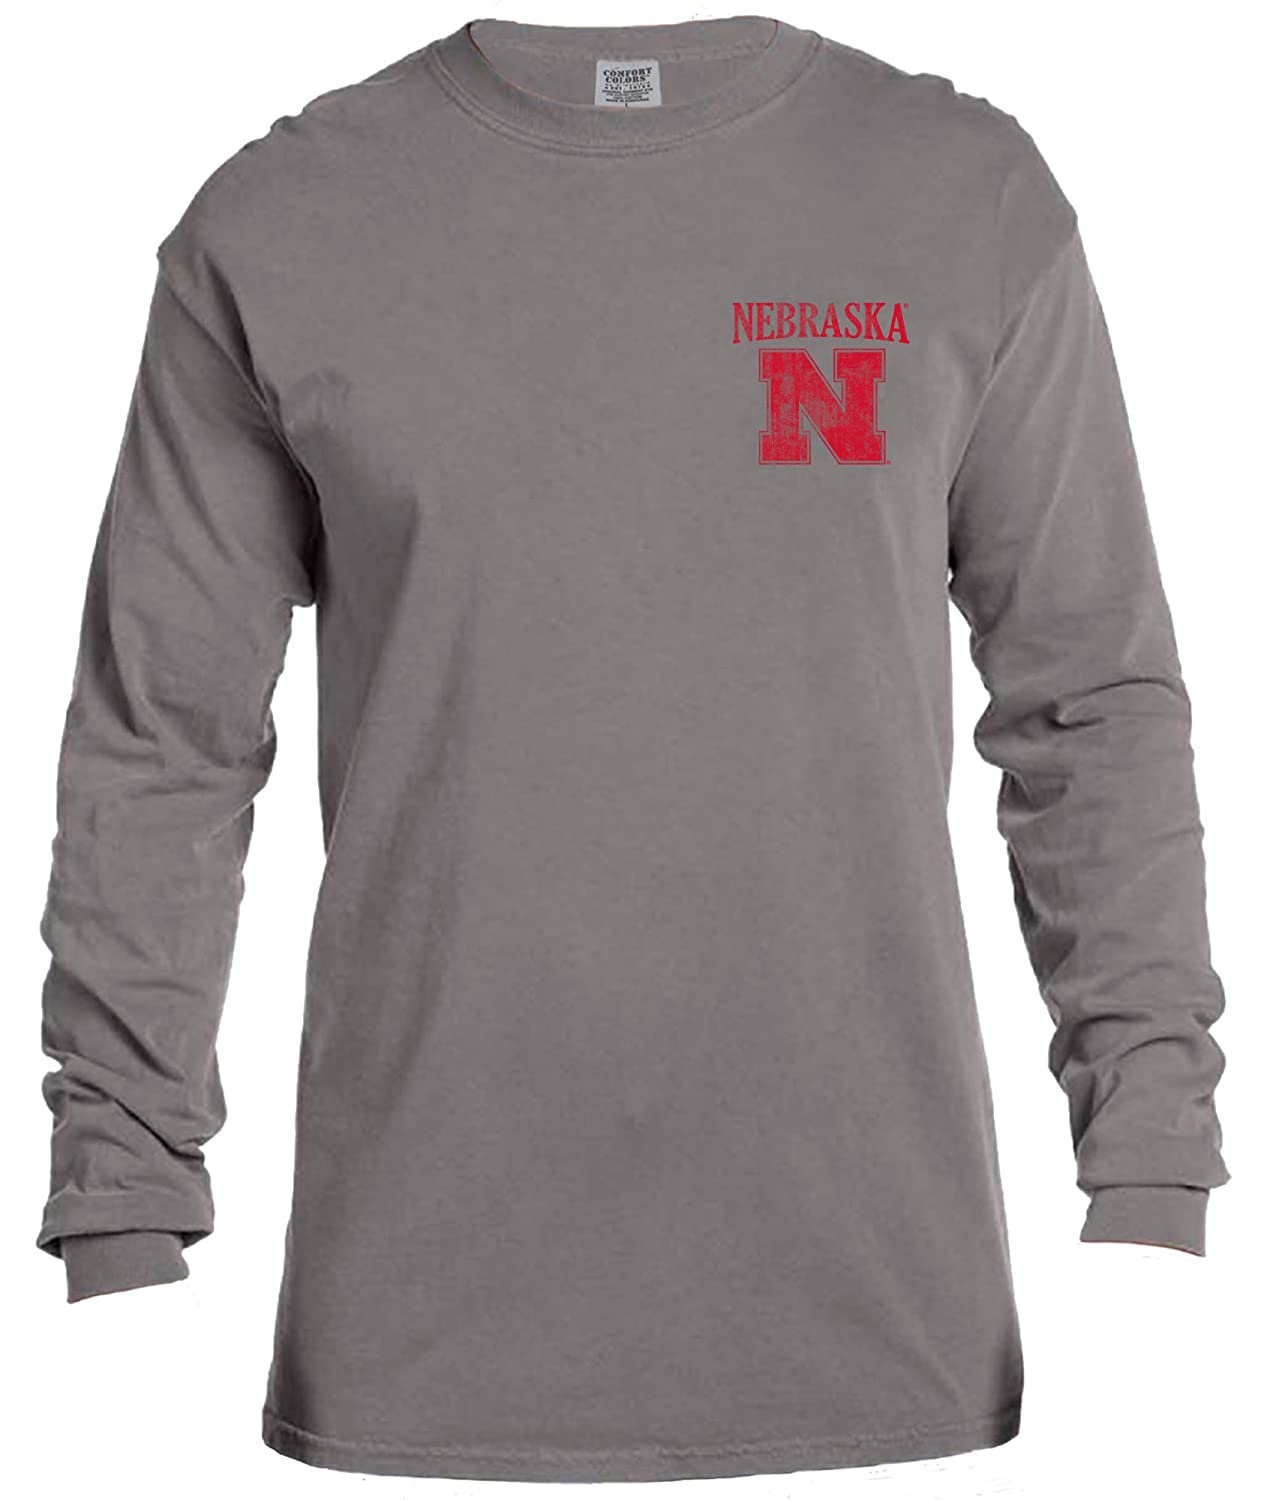 Image One Adult Unisexs NCAA Vintage Poster Long Sleeve Comfort Color Tee